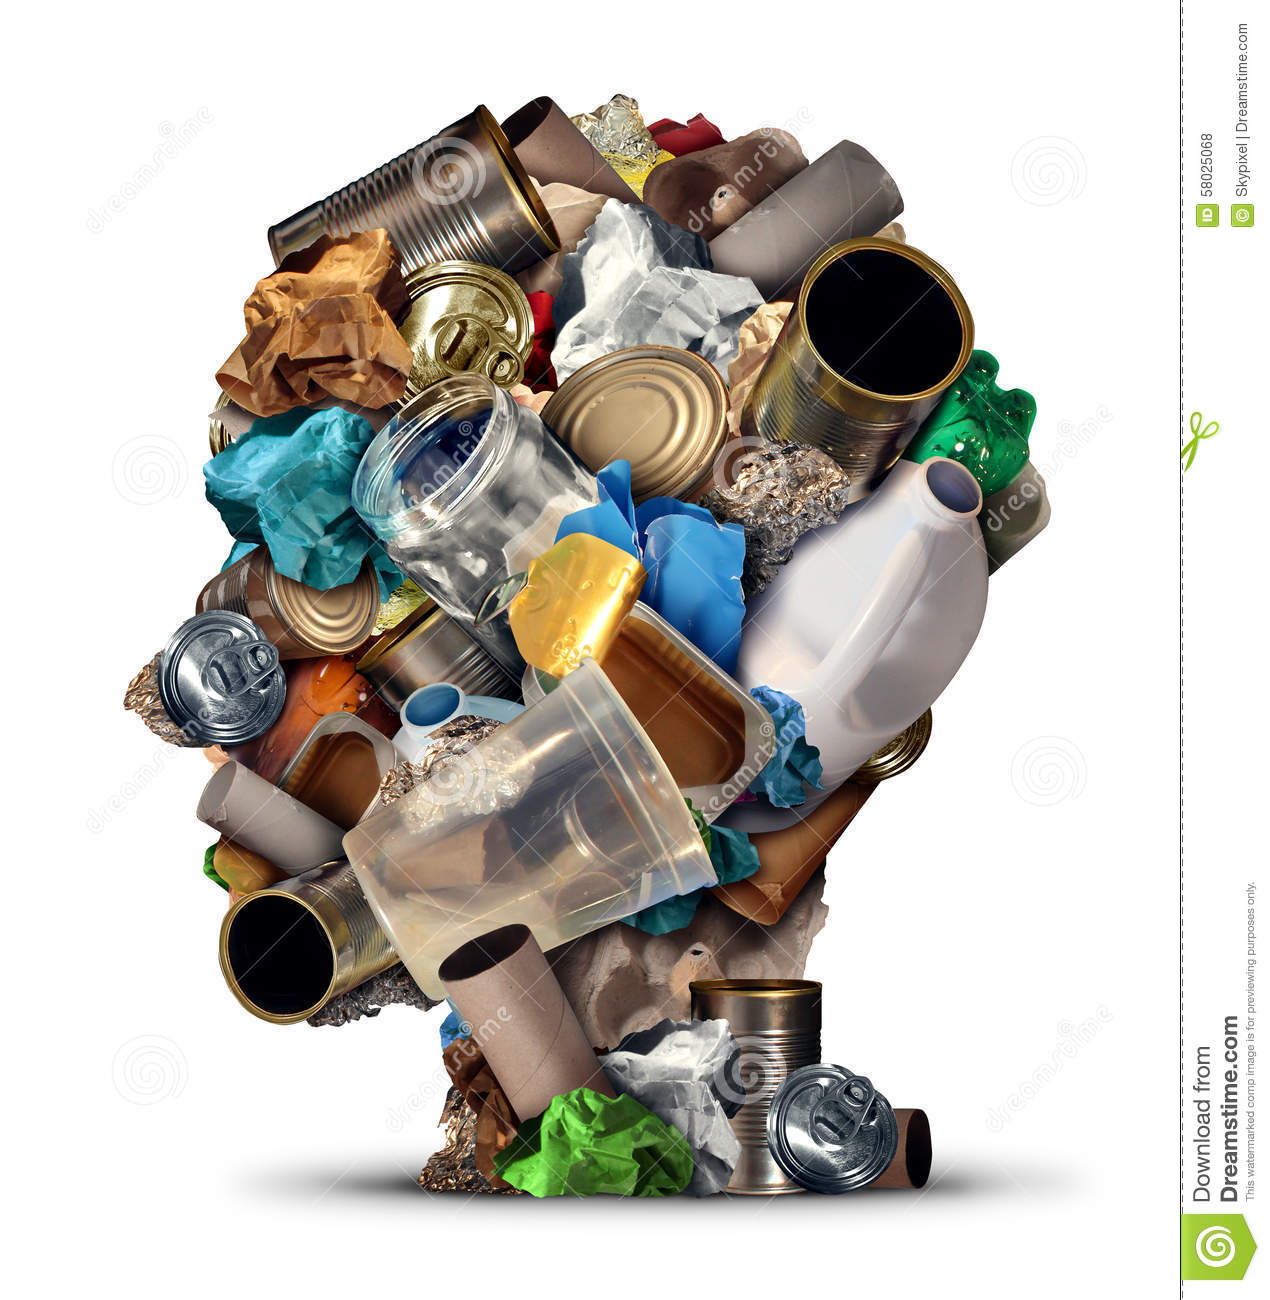 Recycling Ideas Stock Illustration Image 58025068